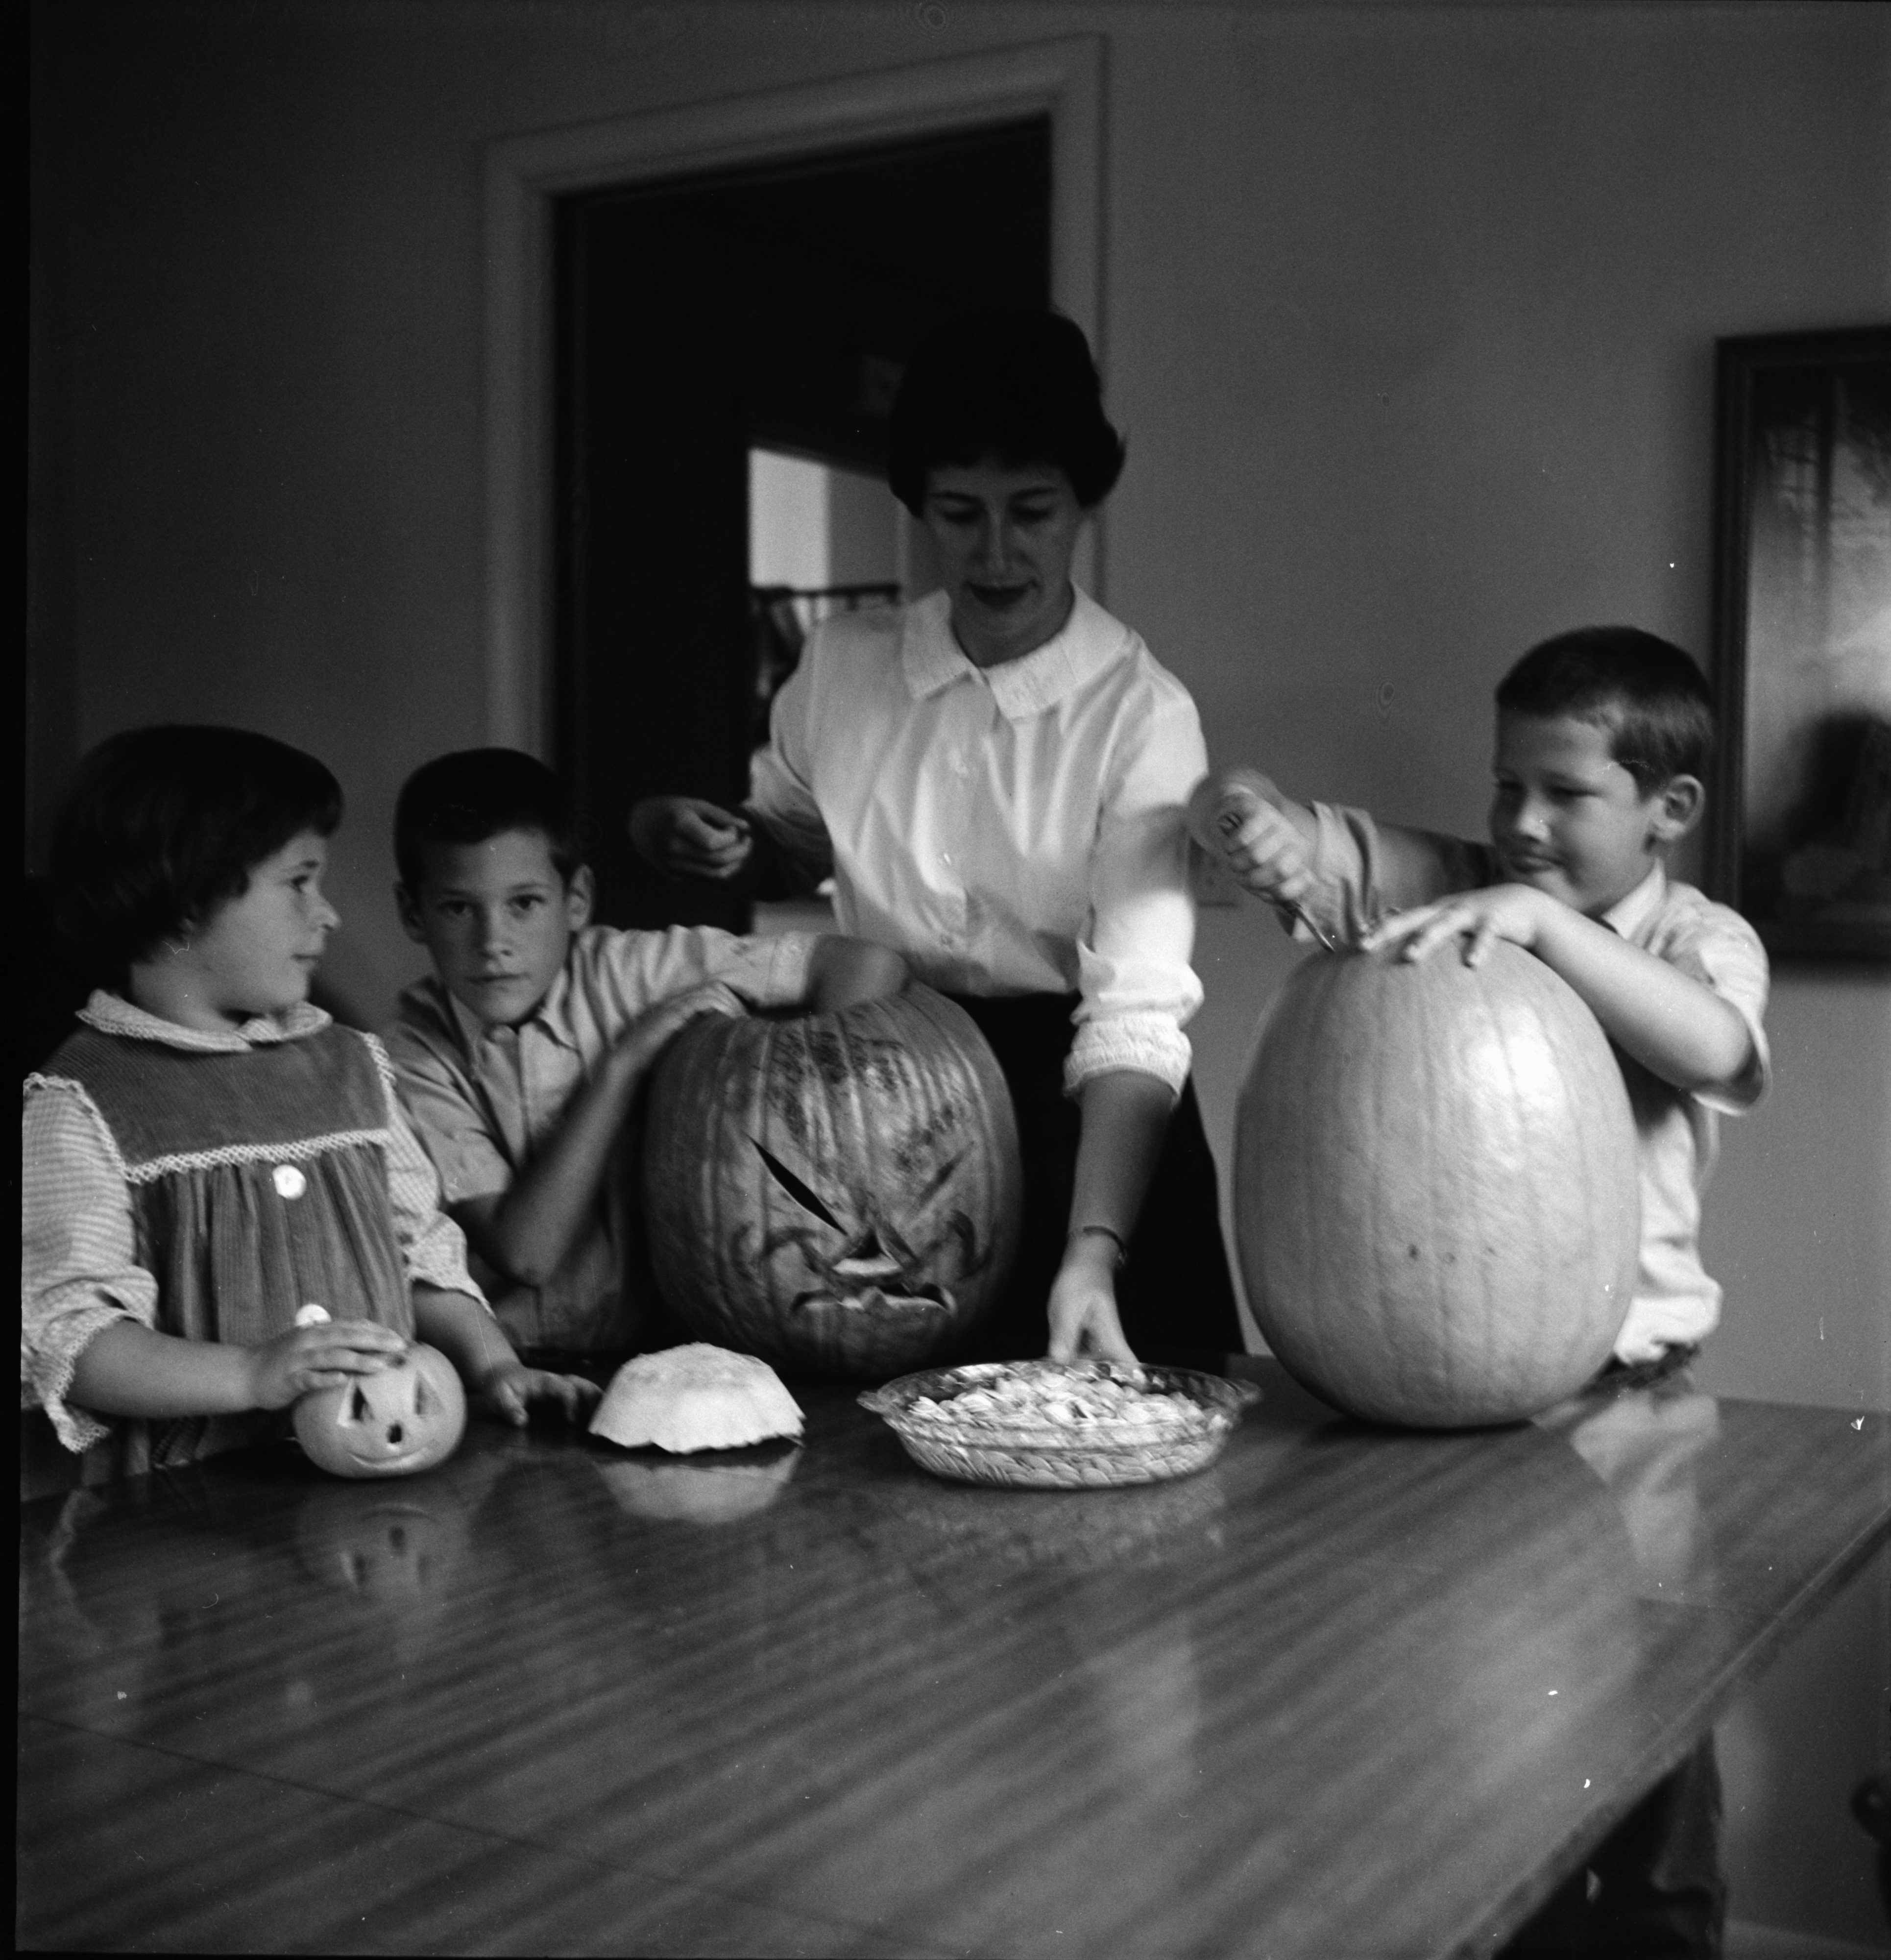 First Congregational Church Jack O'Lantern Contest, October 1962 image